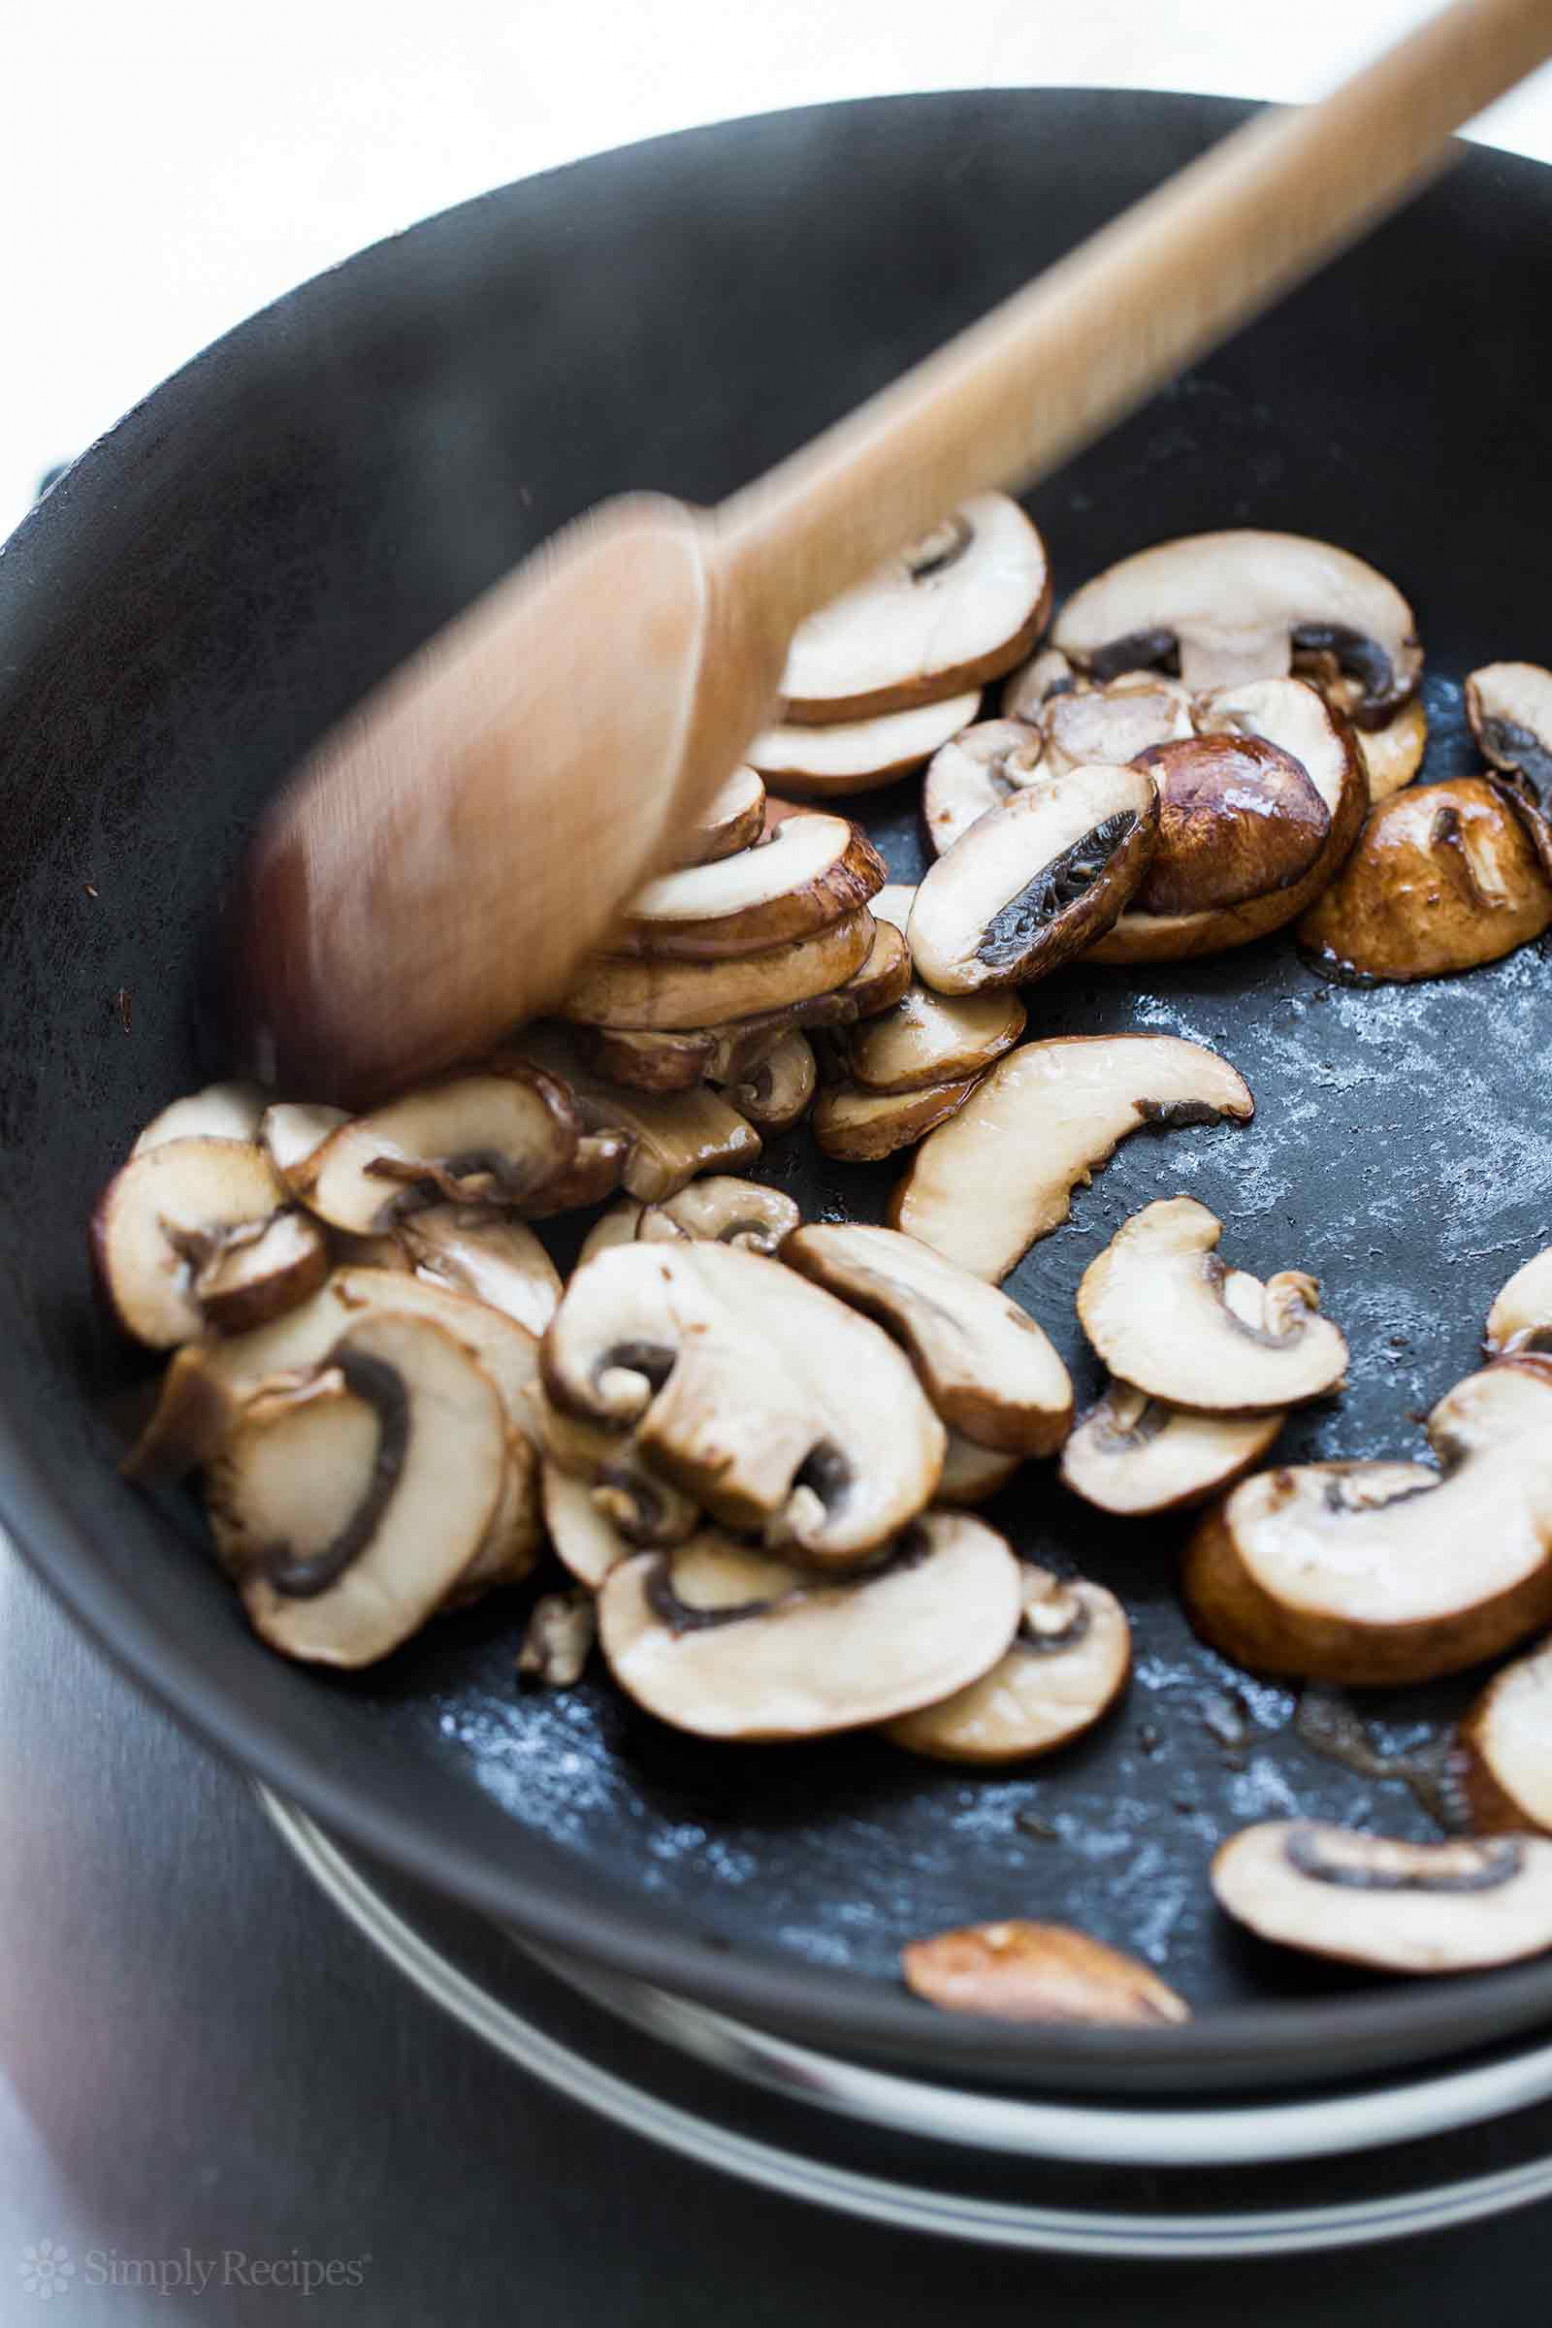 How to Dry Sauté Mushrooms